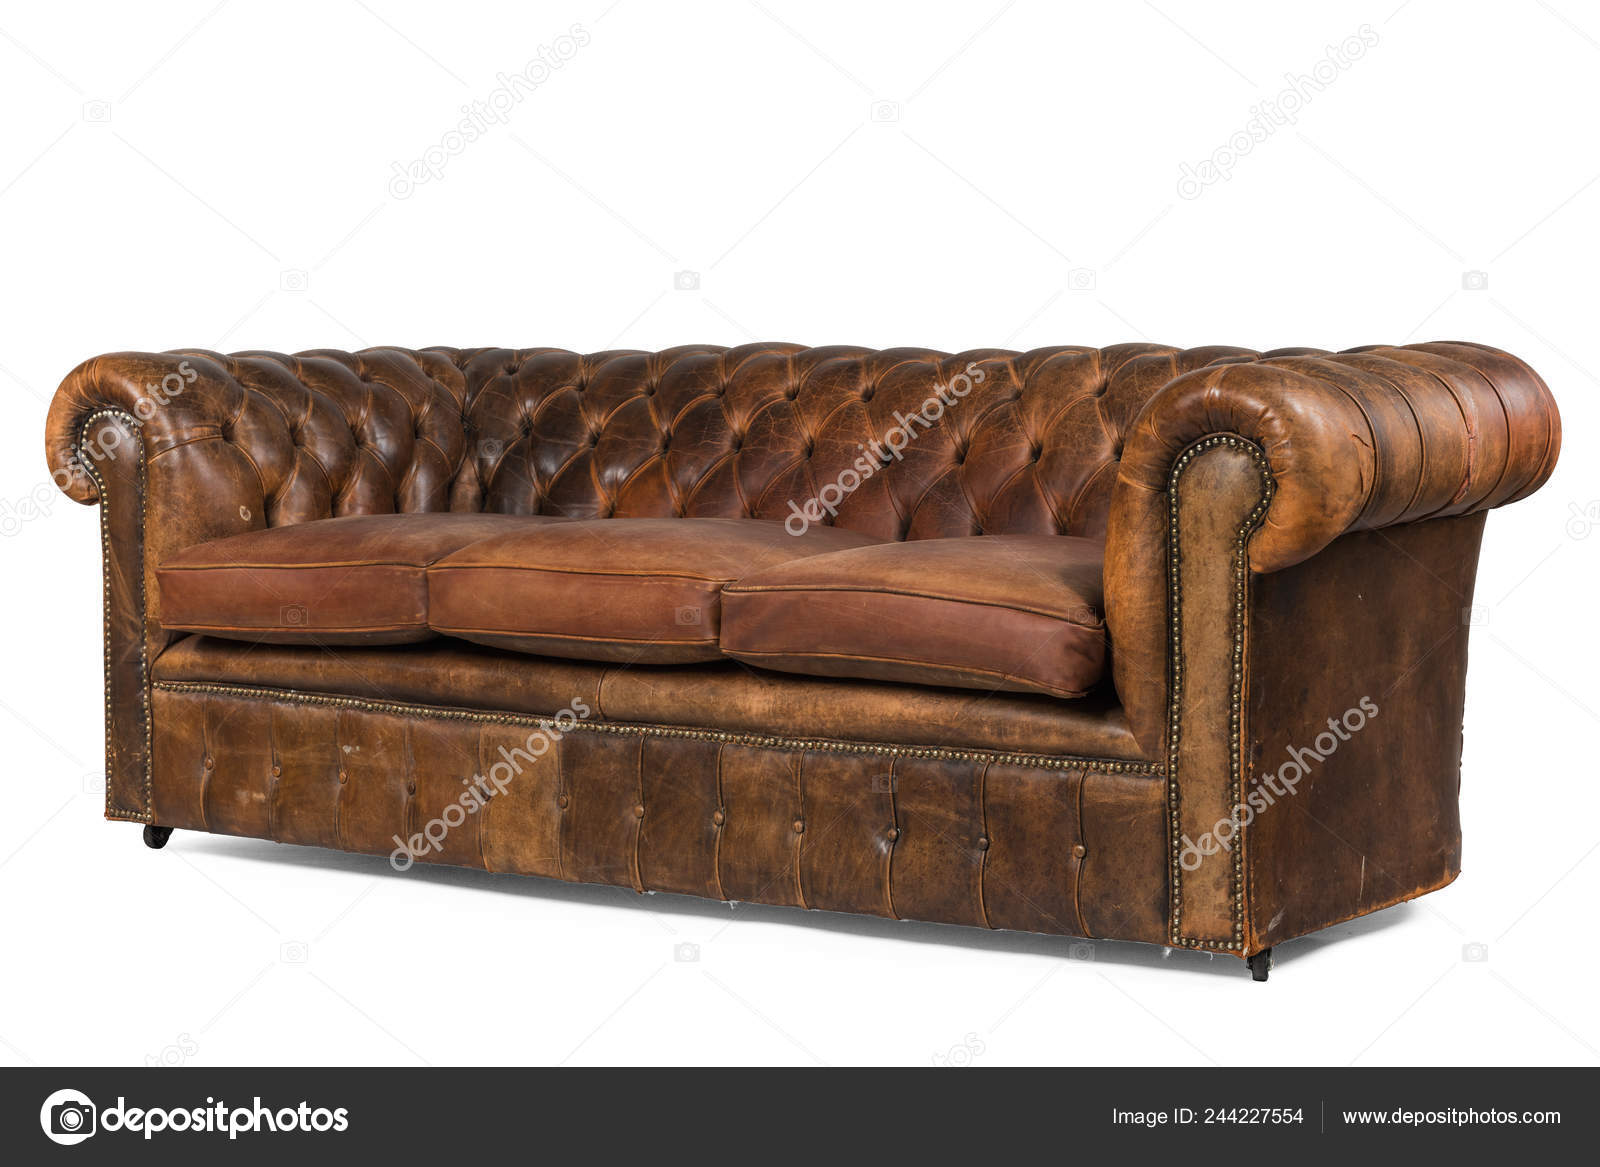 Leather Couch English Leather Chesterfield Buttoned Backed ...